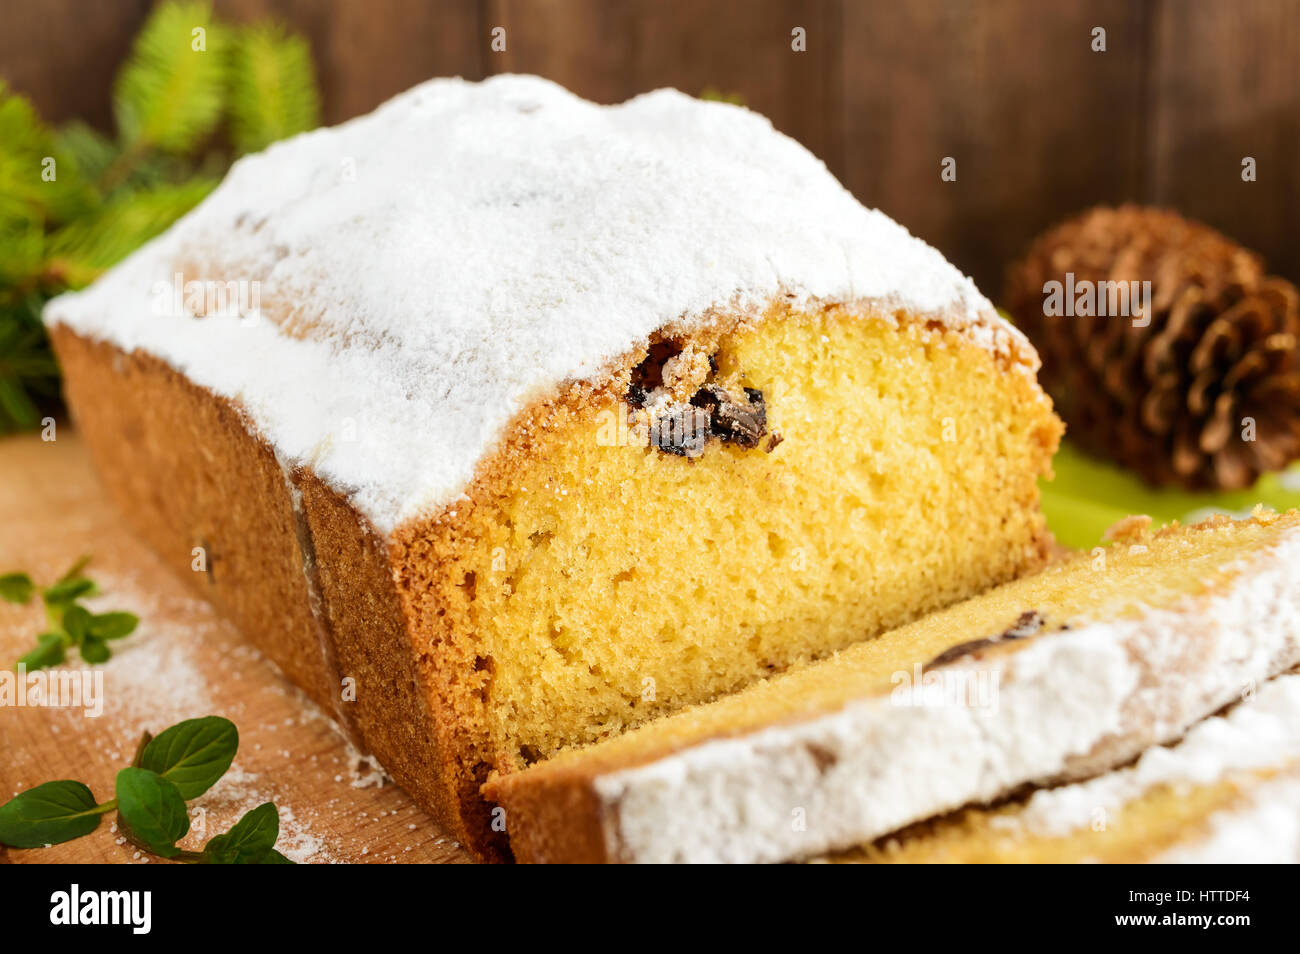 Christmas Loaf Cake Decoration : Freshly baked homemade loaf cake, decorating the top with ...